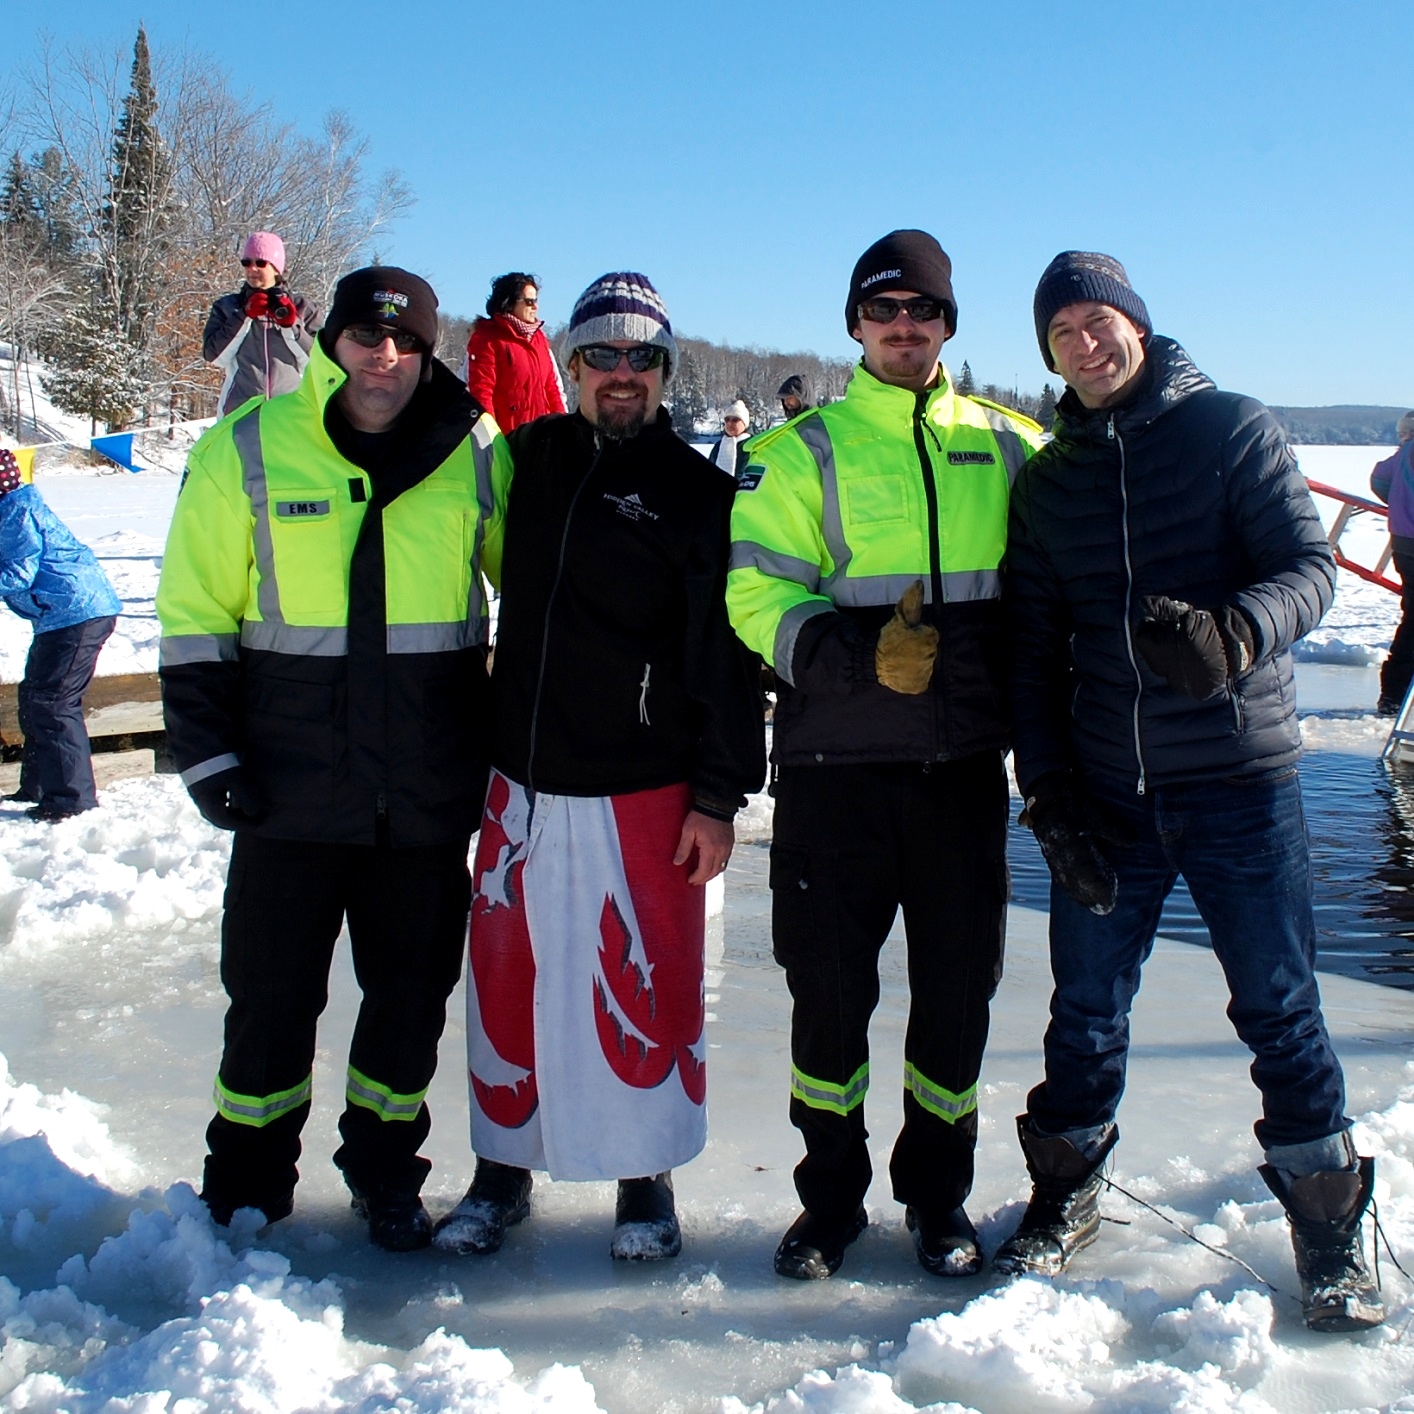 Paramedics Travis Stone (left) and Rob Patterson, with Hidden Valley Resort GM Scott Doughty (second from left) and organizer Markus Latzel, were on hand to help any dippers who needed assistance